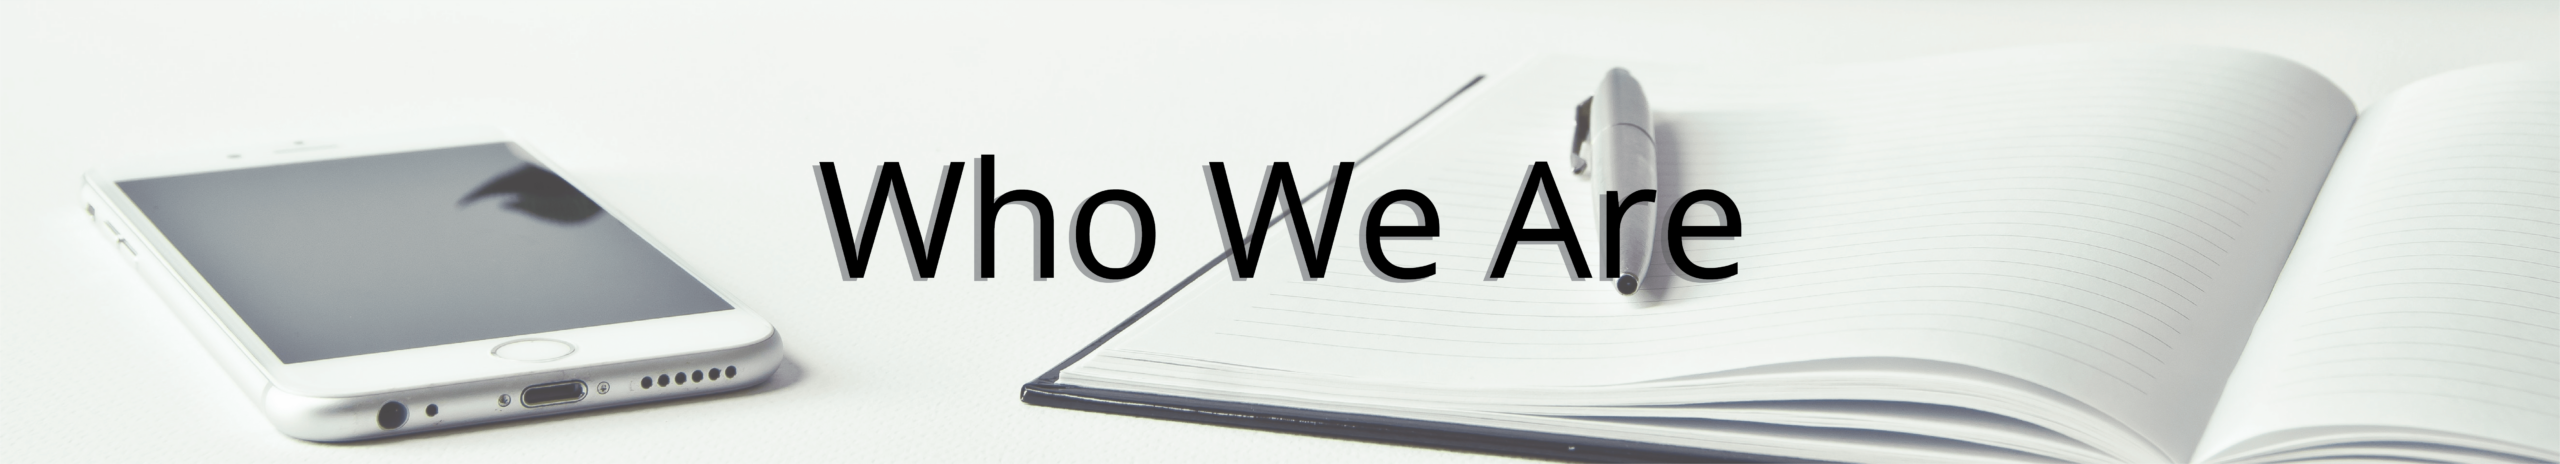 Who is The Staffing Center? Header - Image of an iPhone with a notebook laid on a table with the words Who We Are overlaid on top.